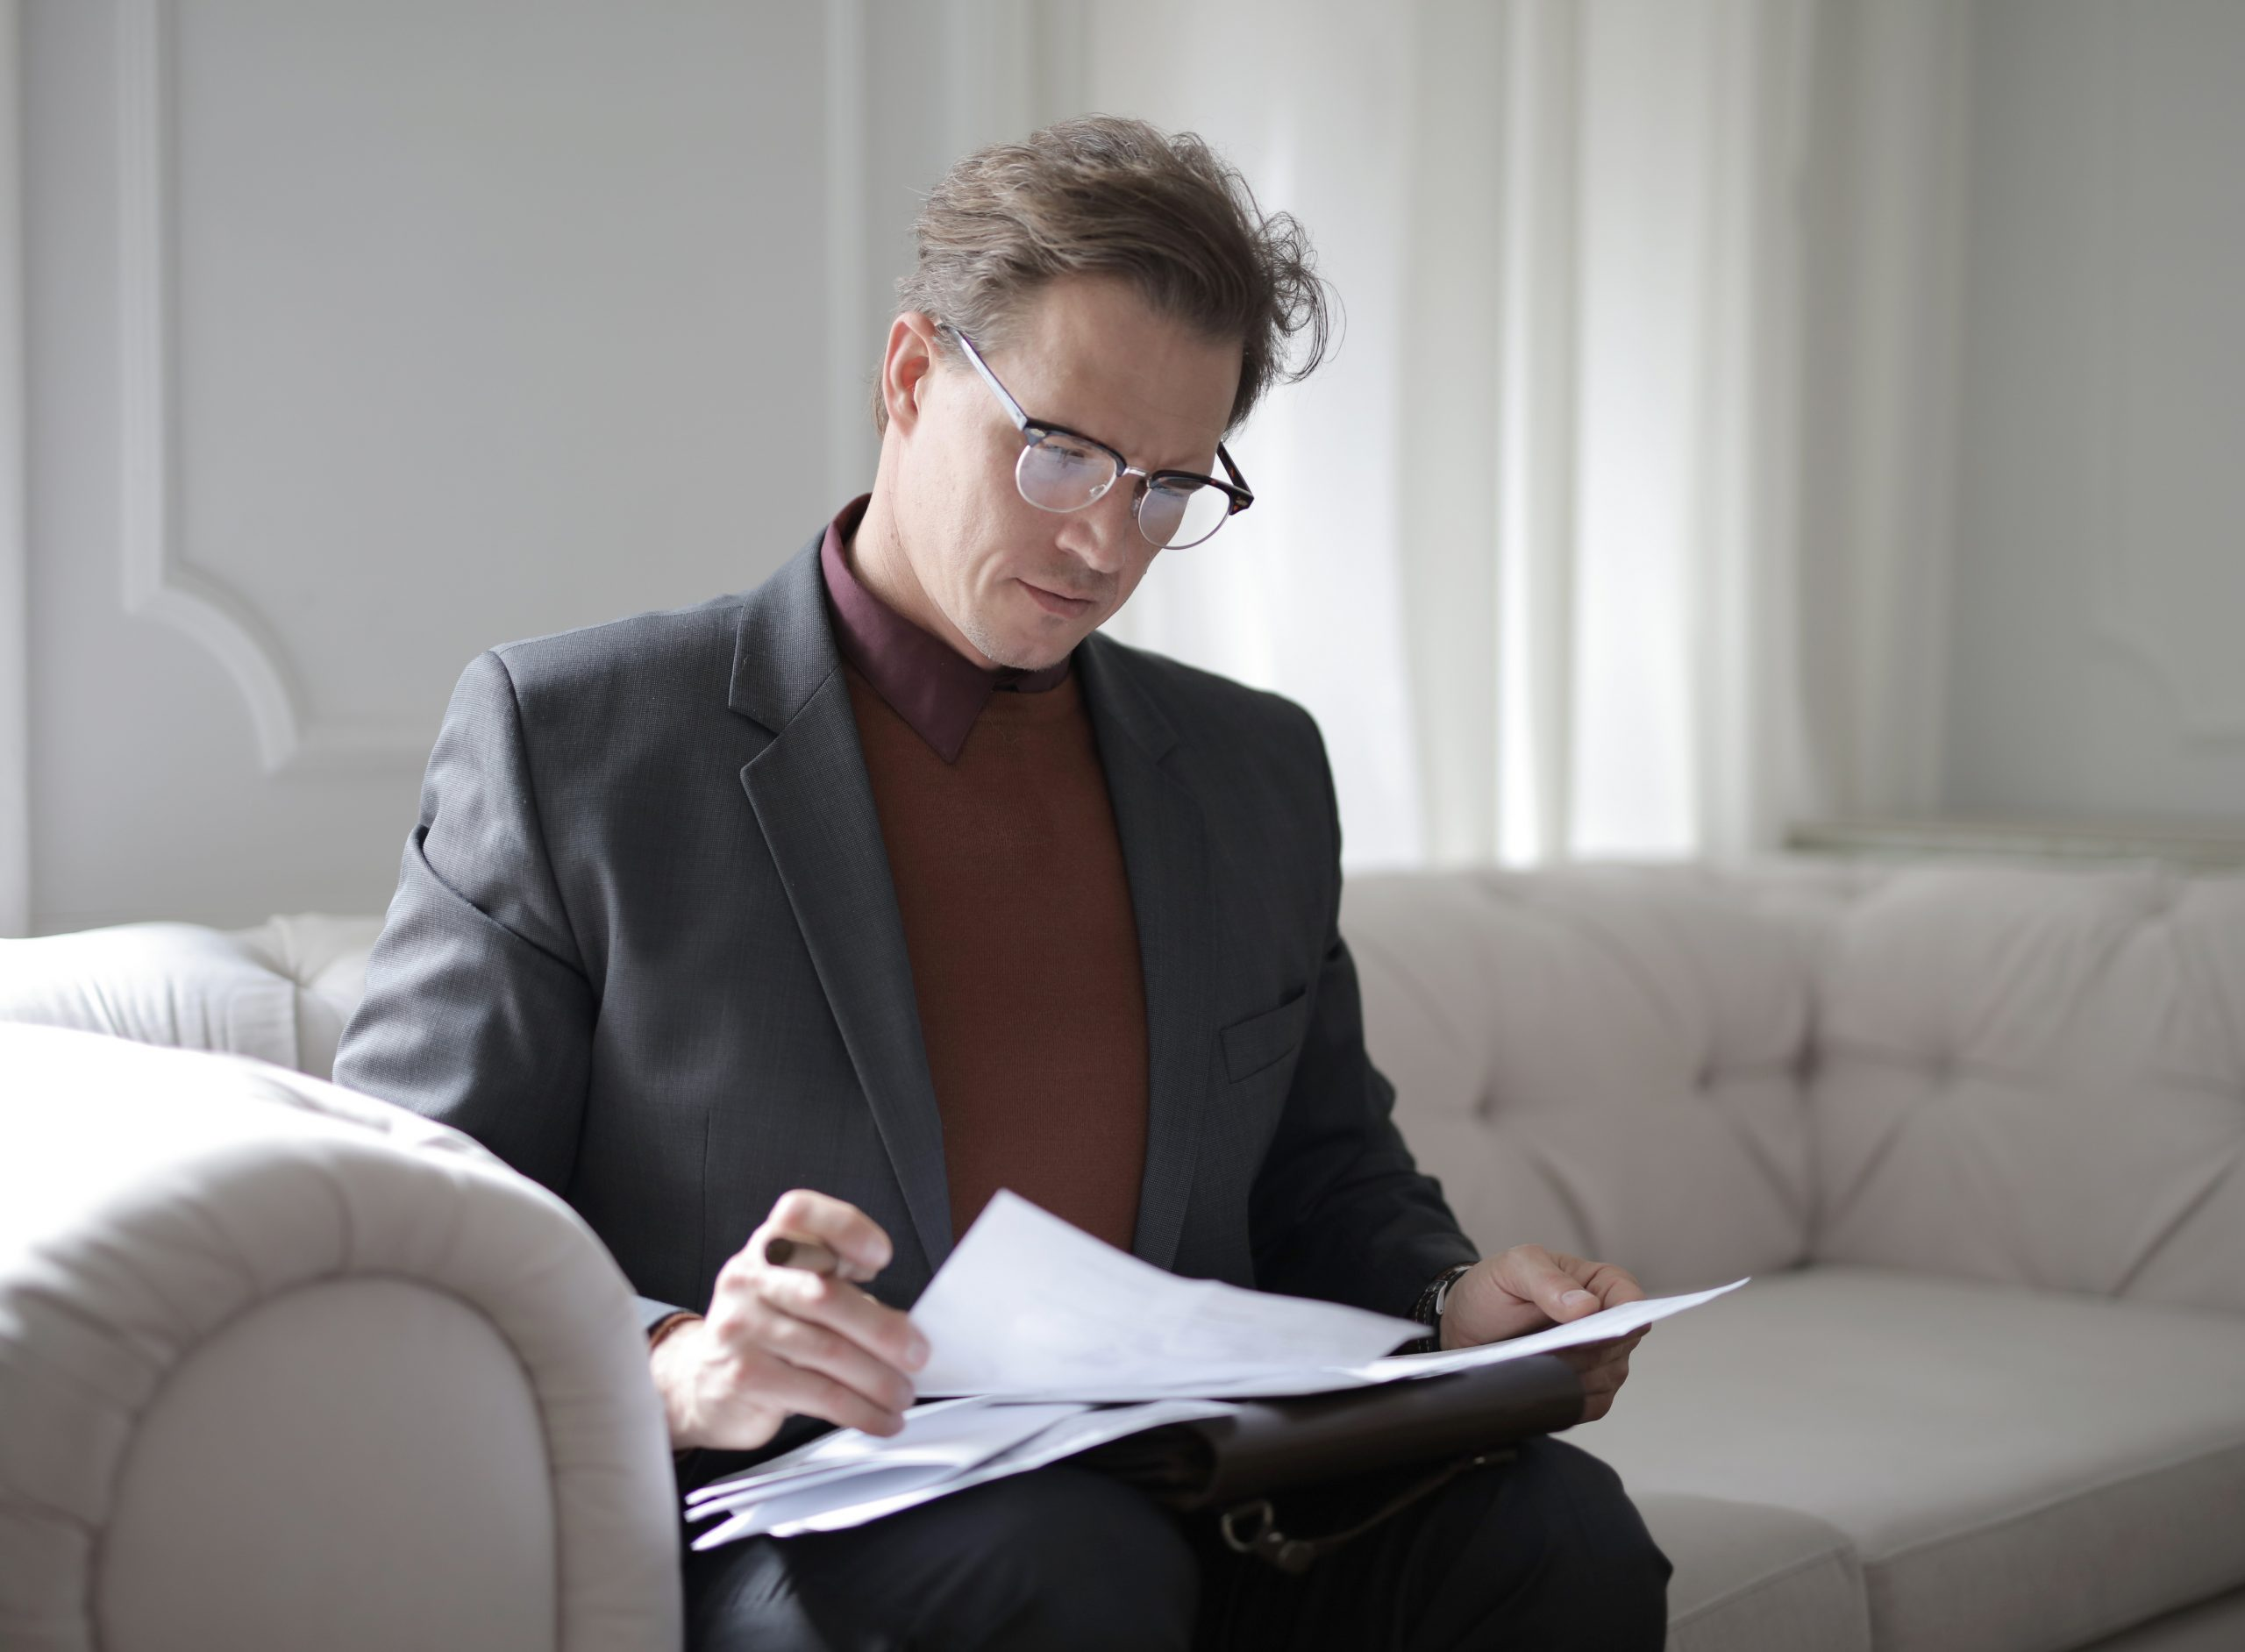 Criminal lawyer in Melbourne looking over some papers